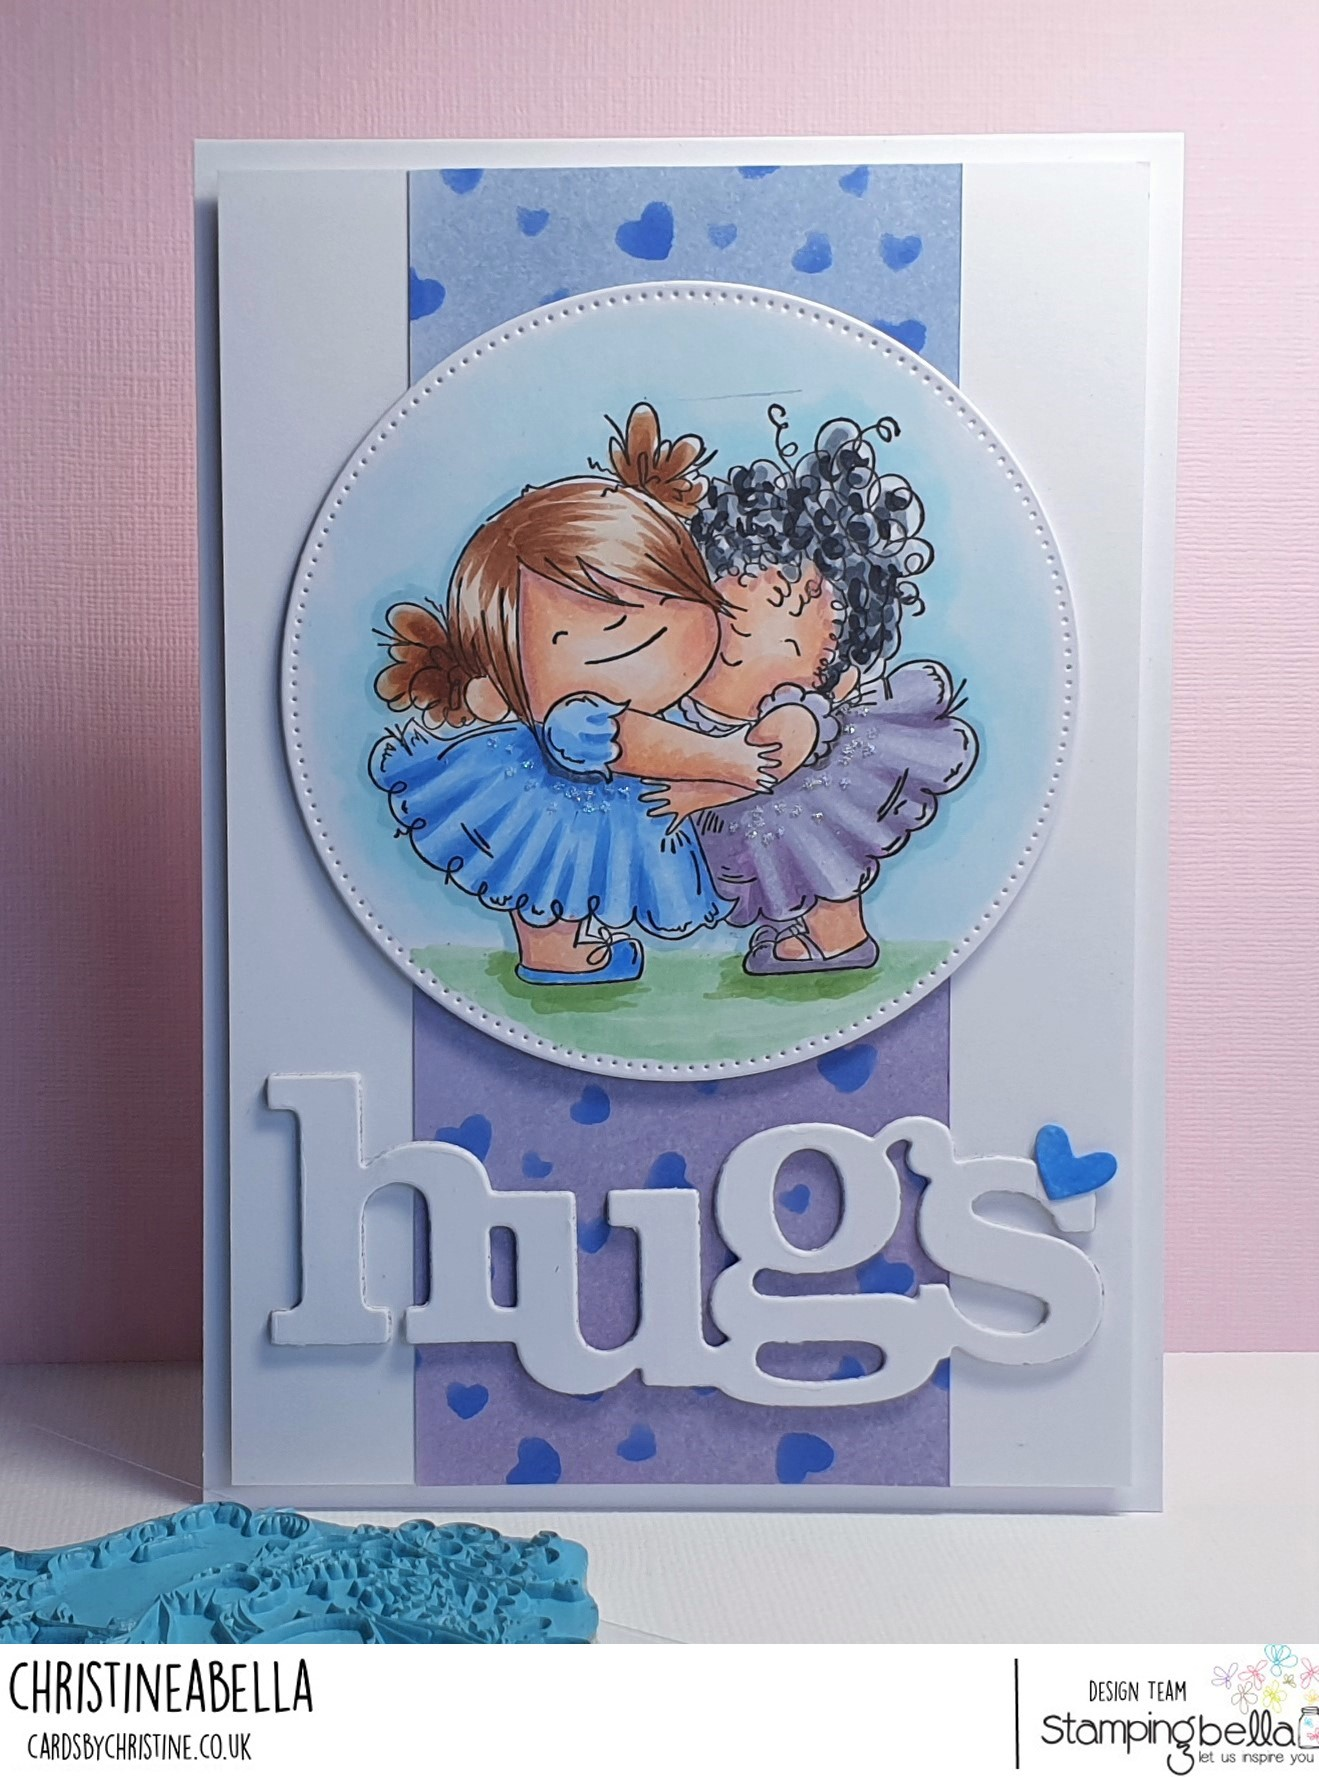 www.stampingbella.com: Rubber stamp used: HUGGY SQUIDGIES. card by CHRISTINE LEVISON